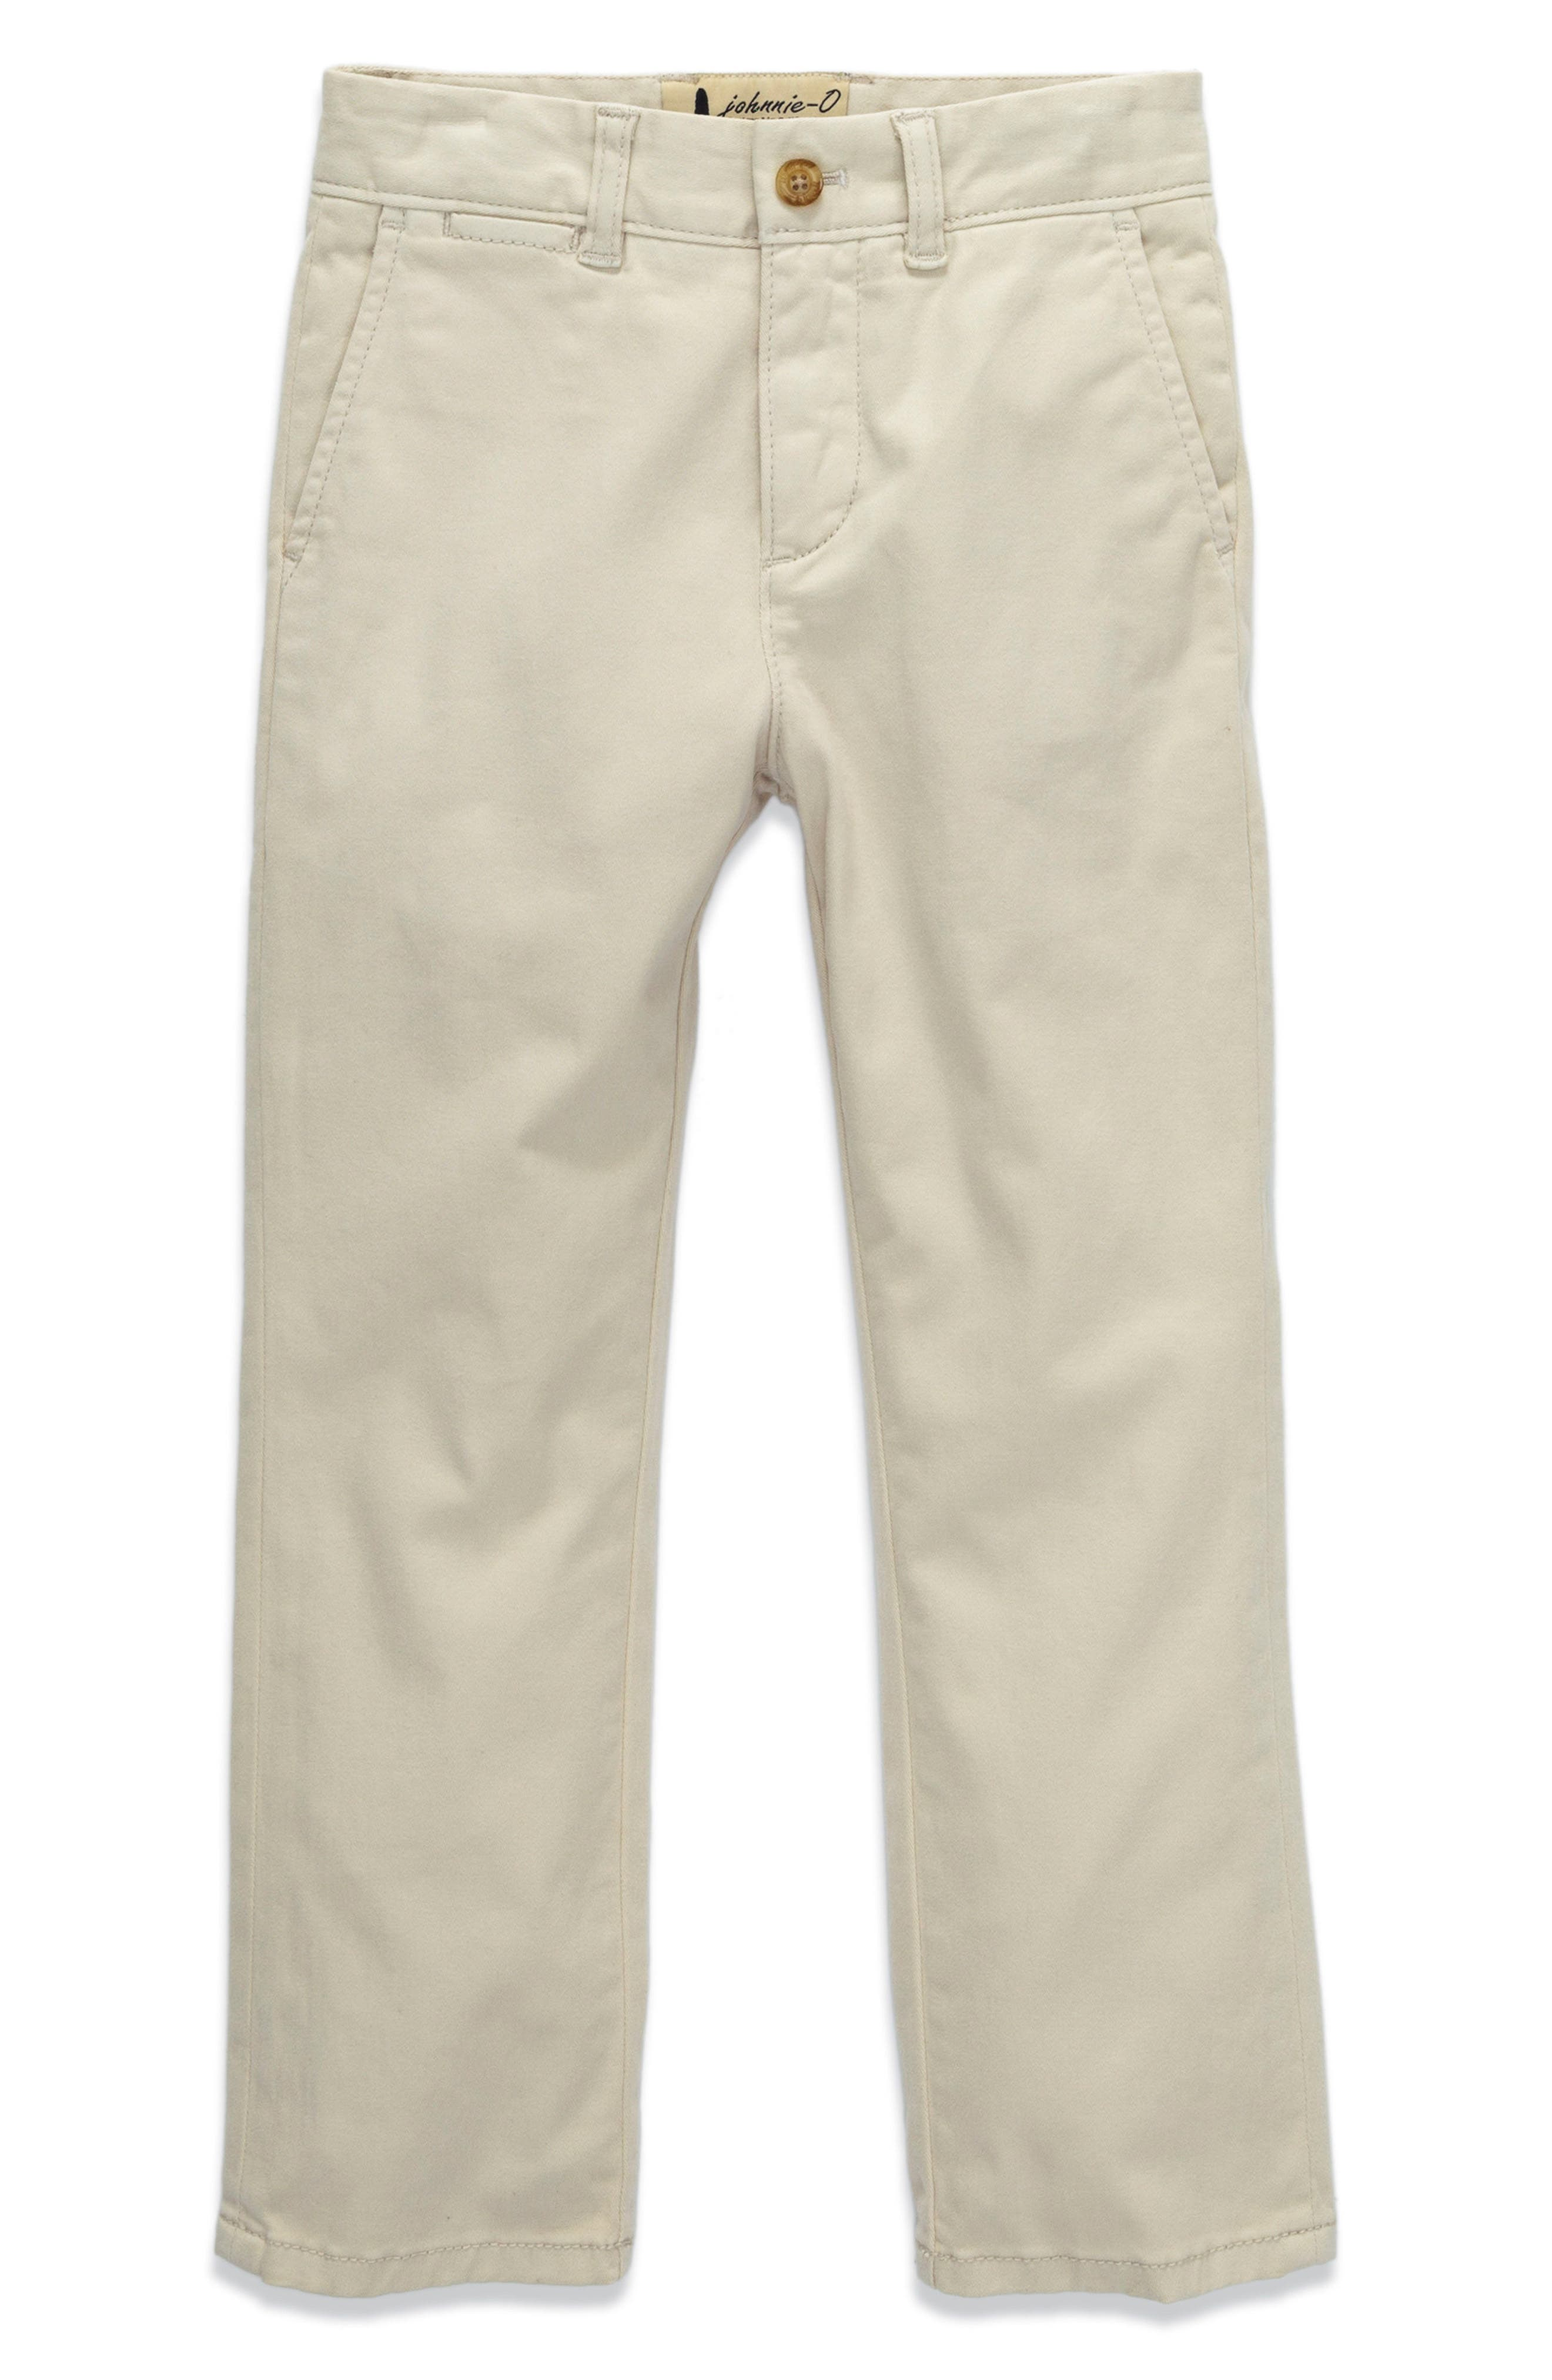 johnnie-O Napa Stretch Chinos (Little Boys)